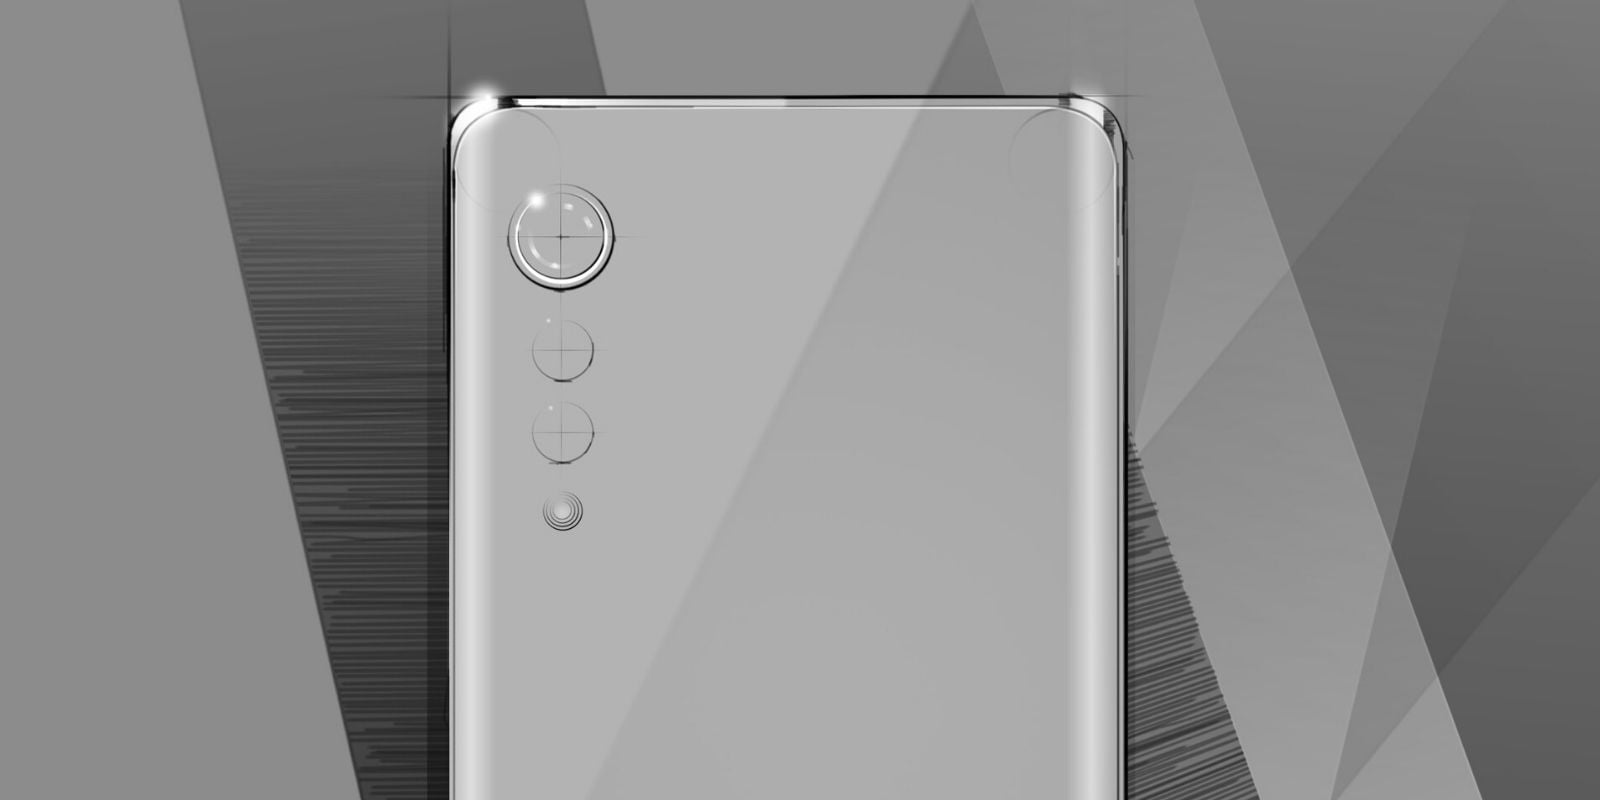 LG new water-drop phone design